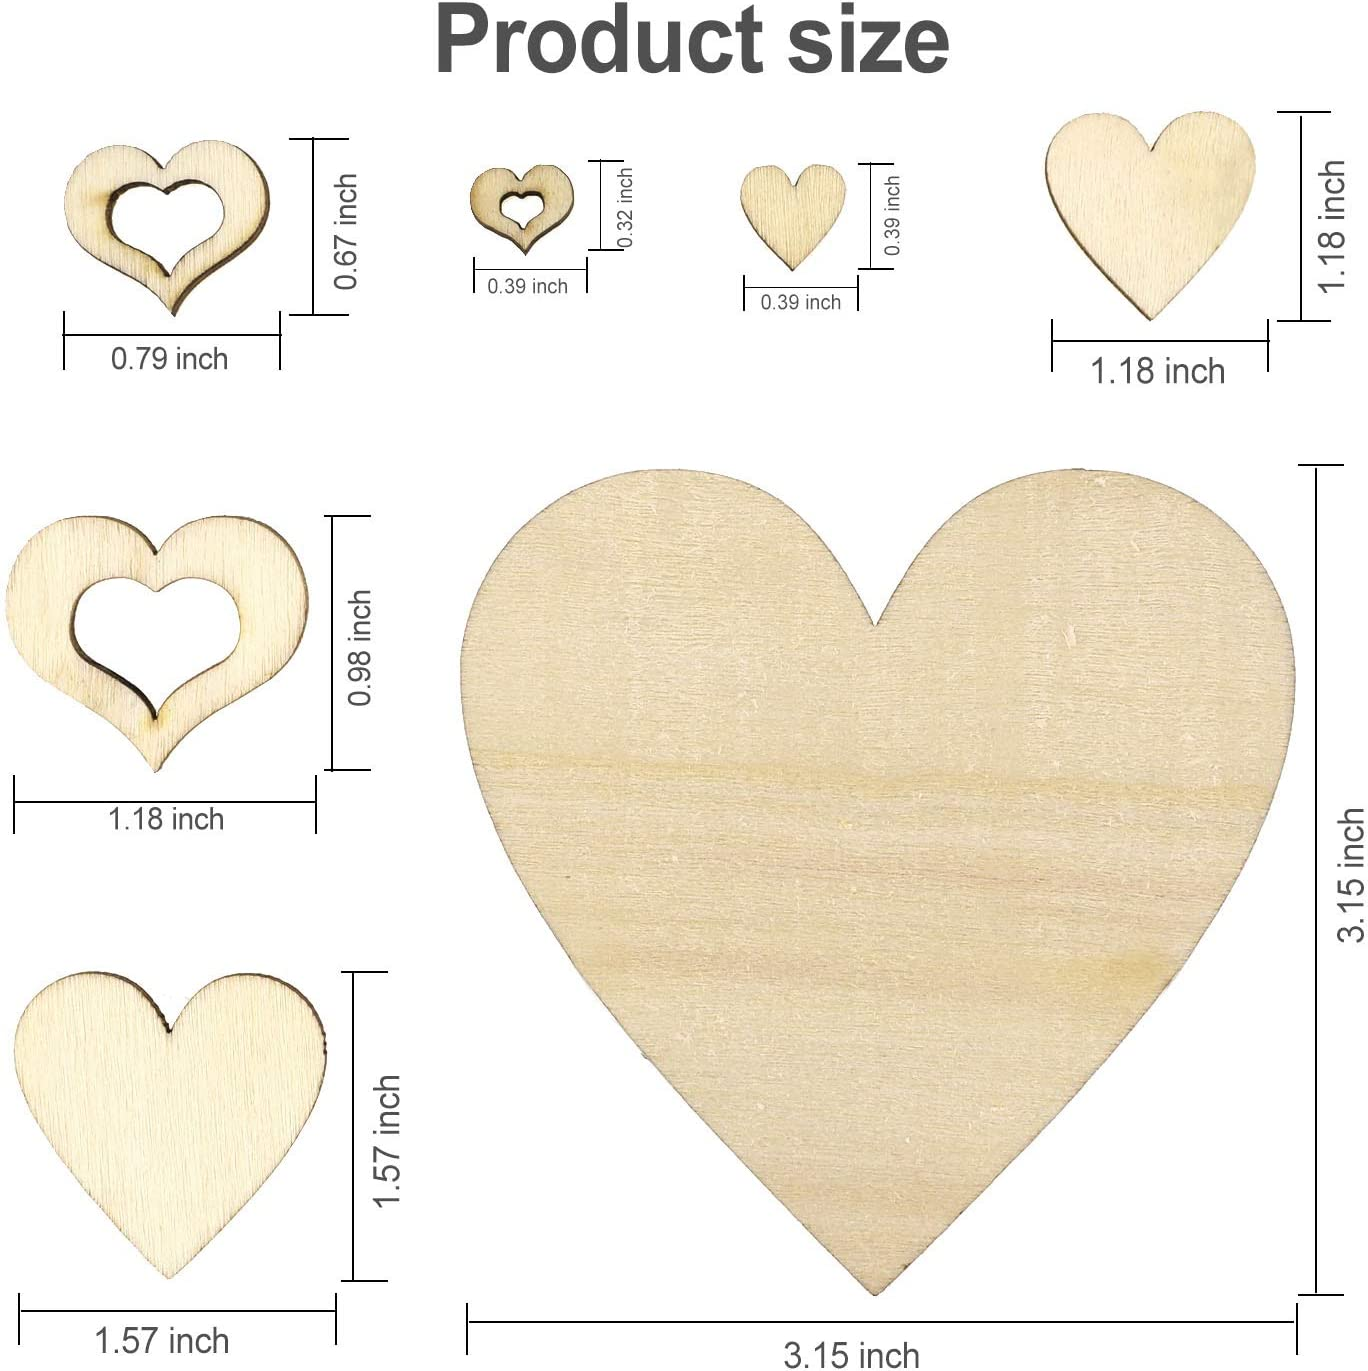 HOWAF Heart Shaped Wood Chip Set for Party Favours